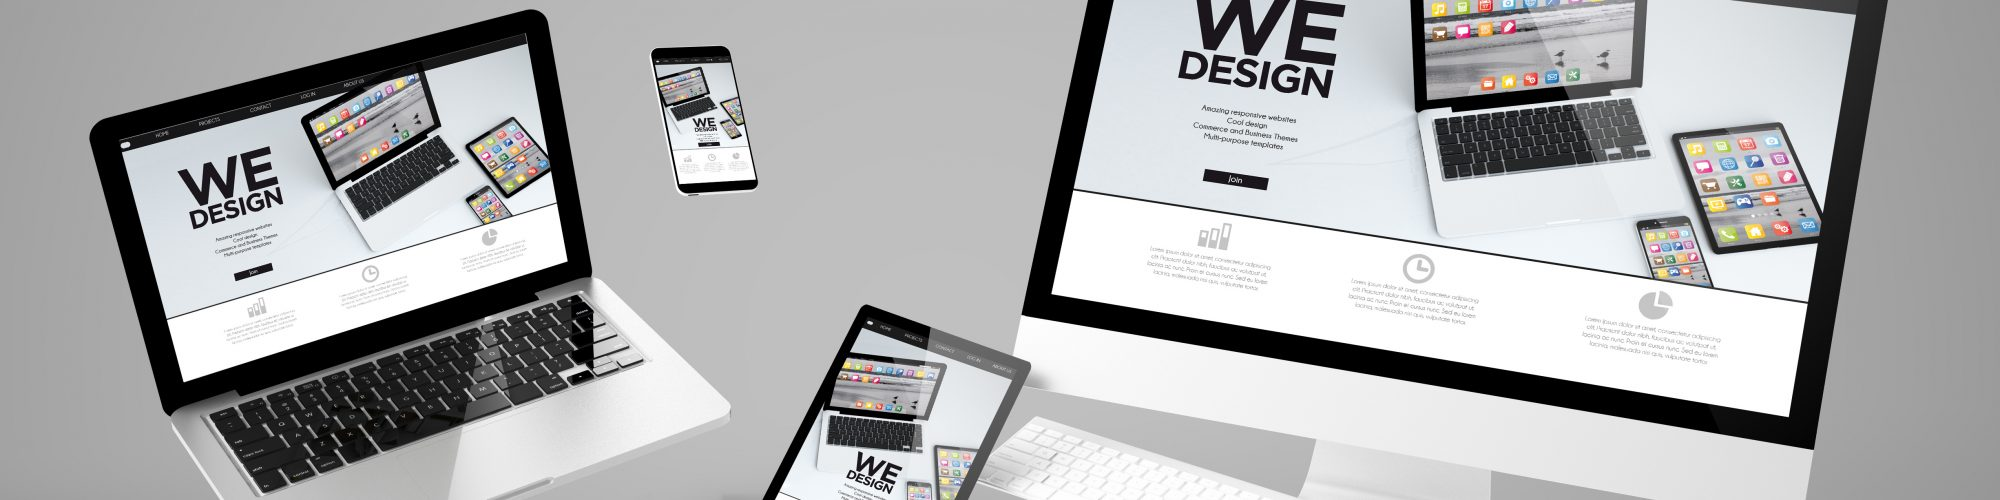 flying devices with we design website responsive design 3d rendering